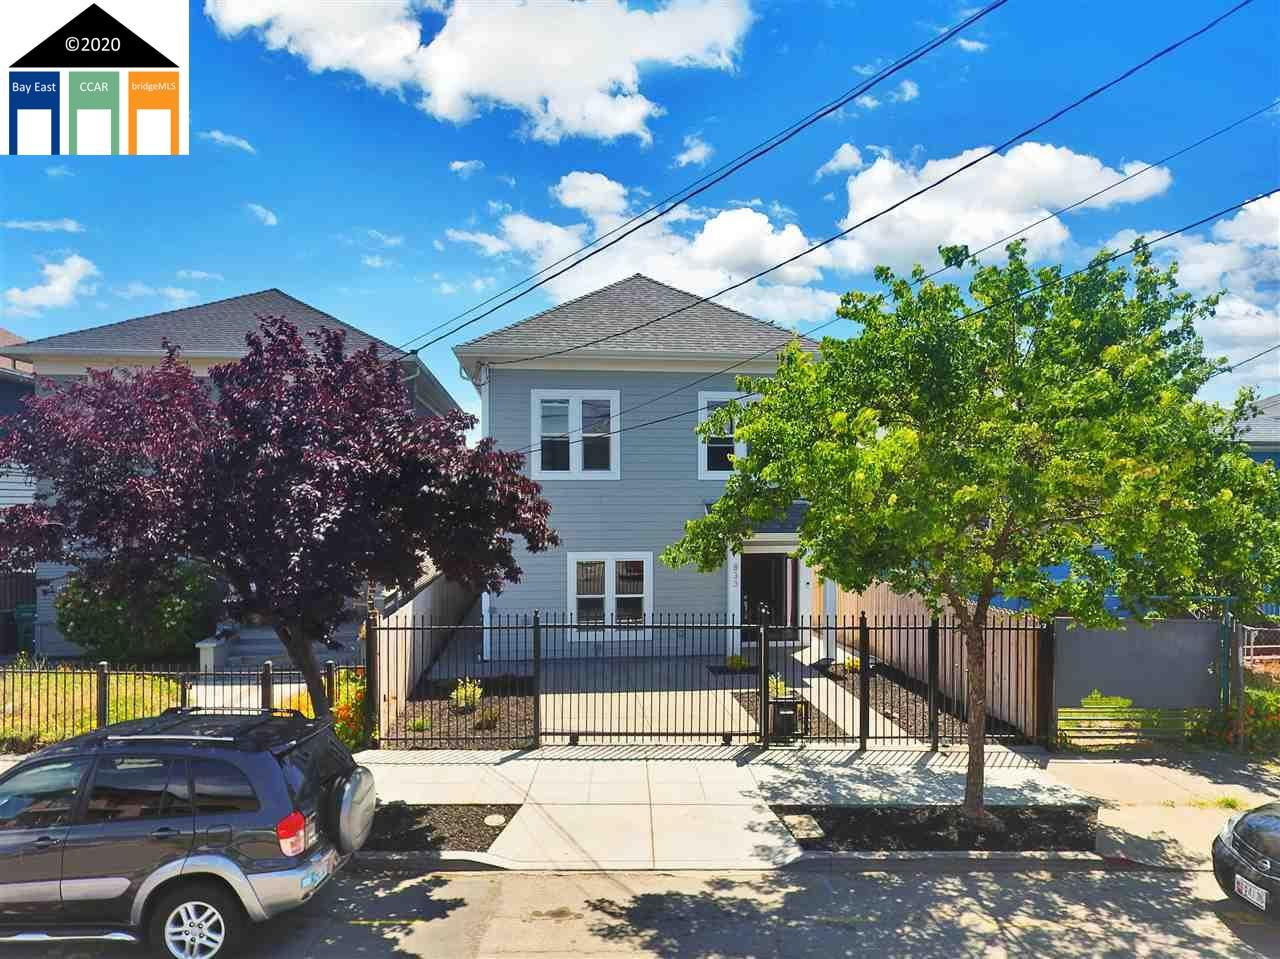 Photo of 833 34Th St, OAKLAND, CA 94608 (MLS # 40913535)